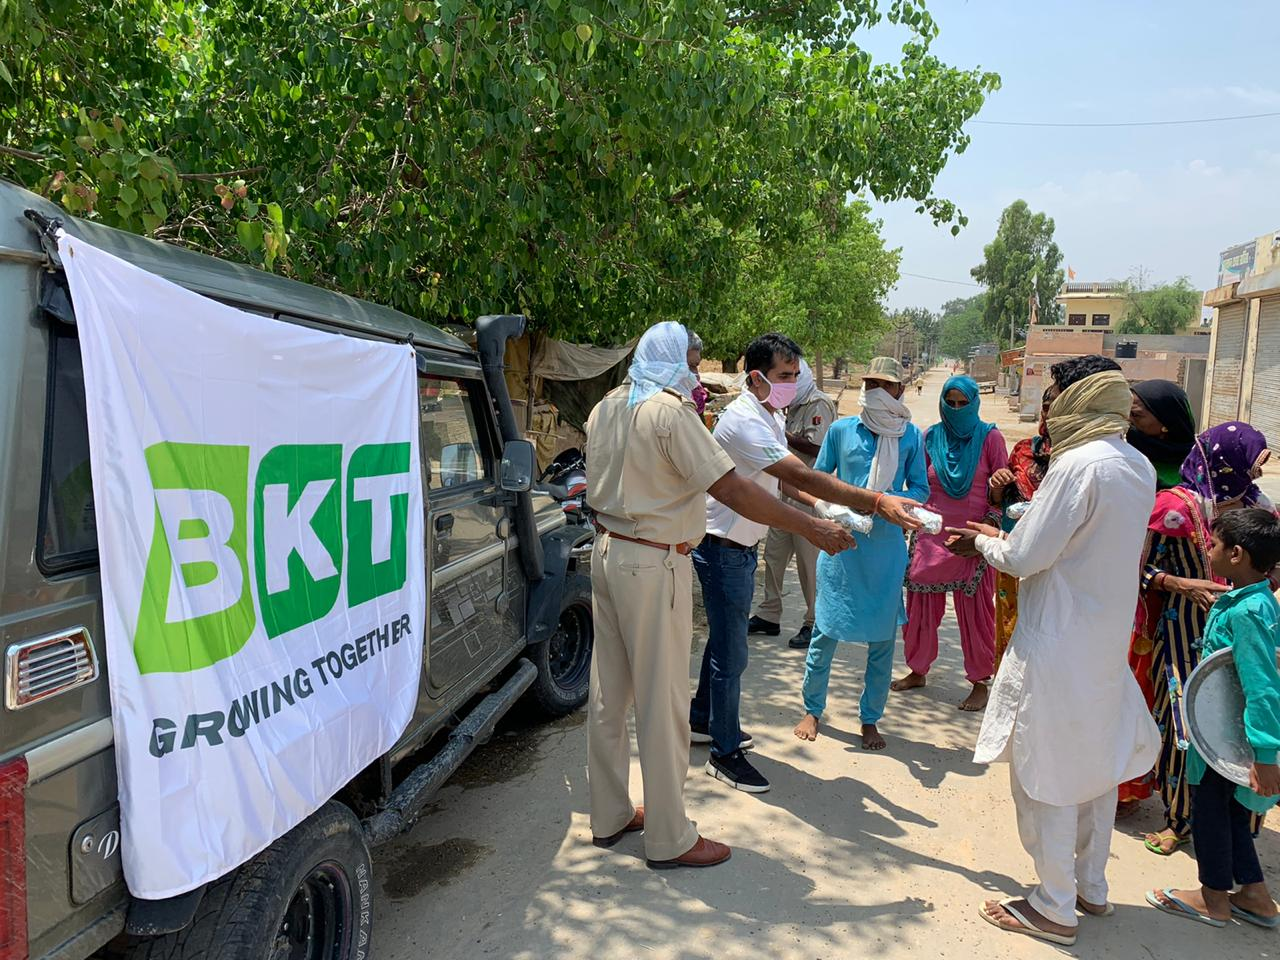 BKT Provides COVID-19 Support By 'Acting Together'